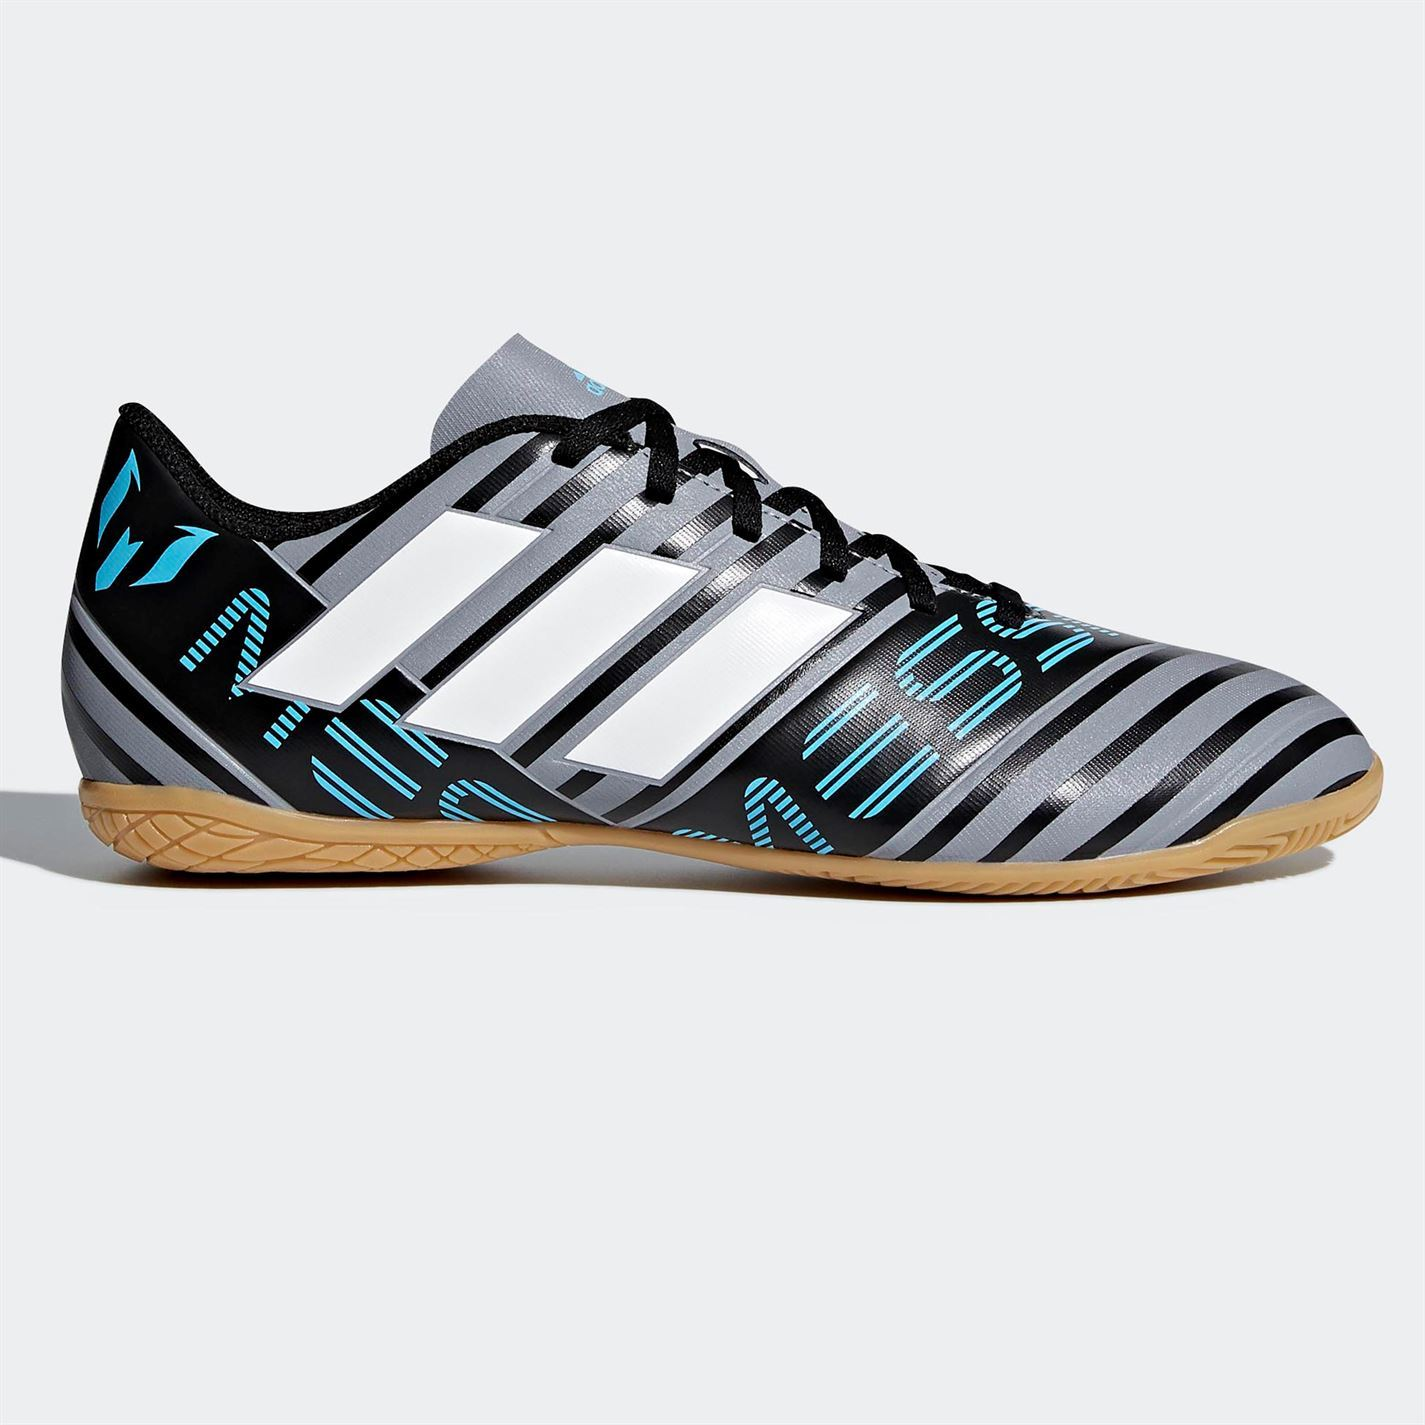 587af782d8d ... adidas Nemeziz Messi Tango 17.4 Indoor Football Trainers Mens Grey  Soccer Shoes ...